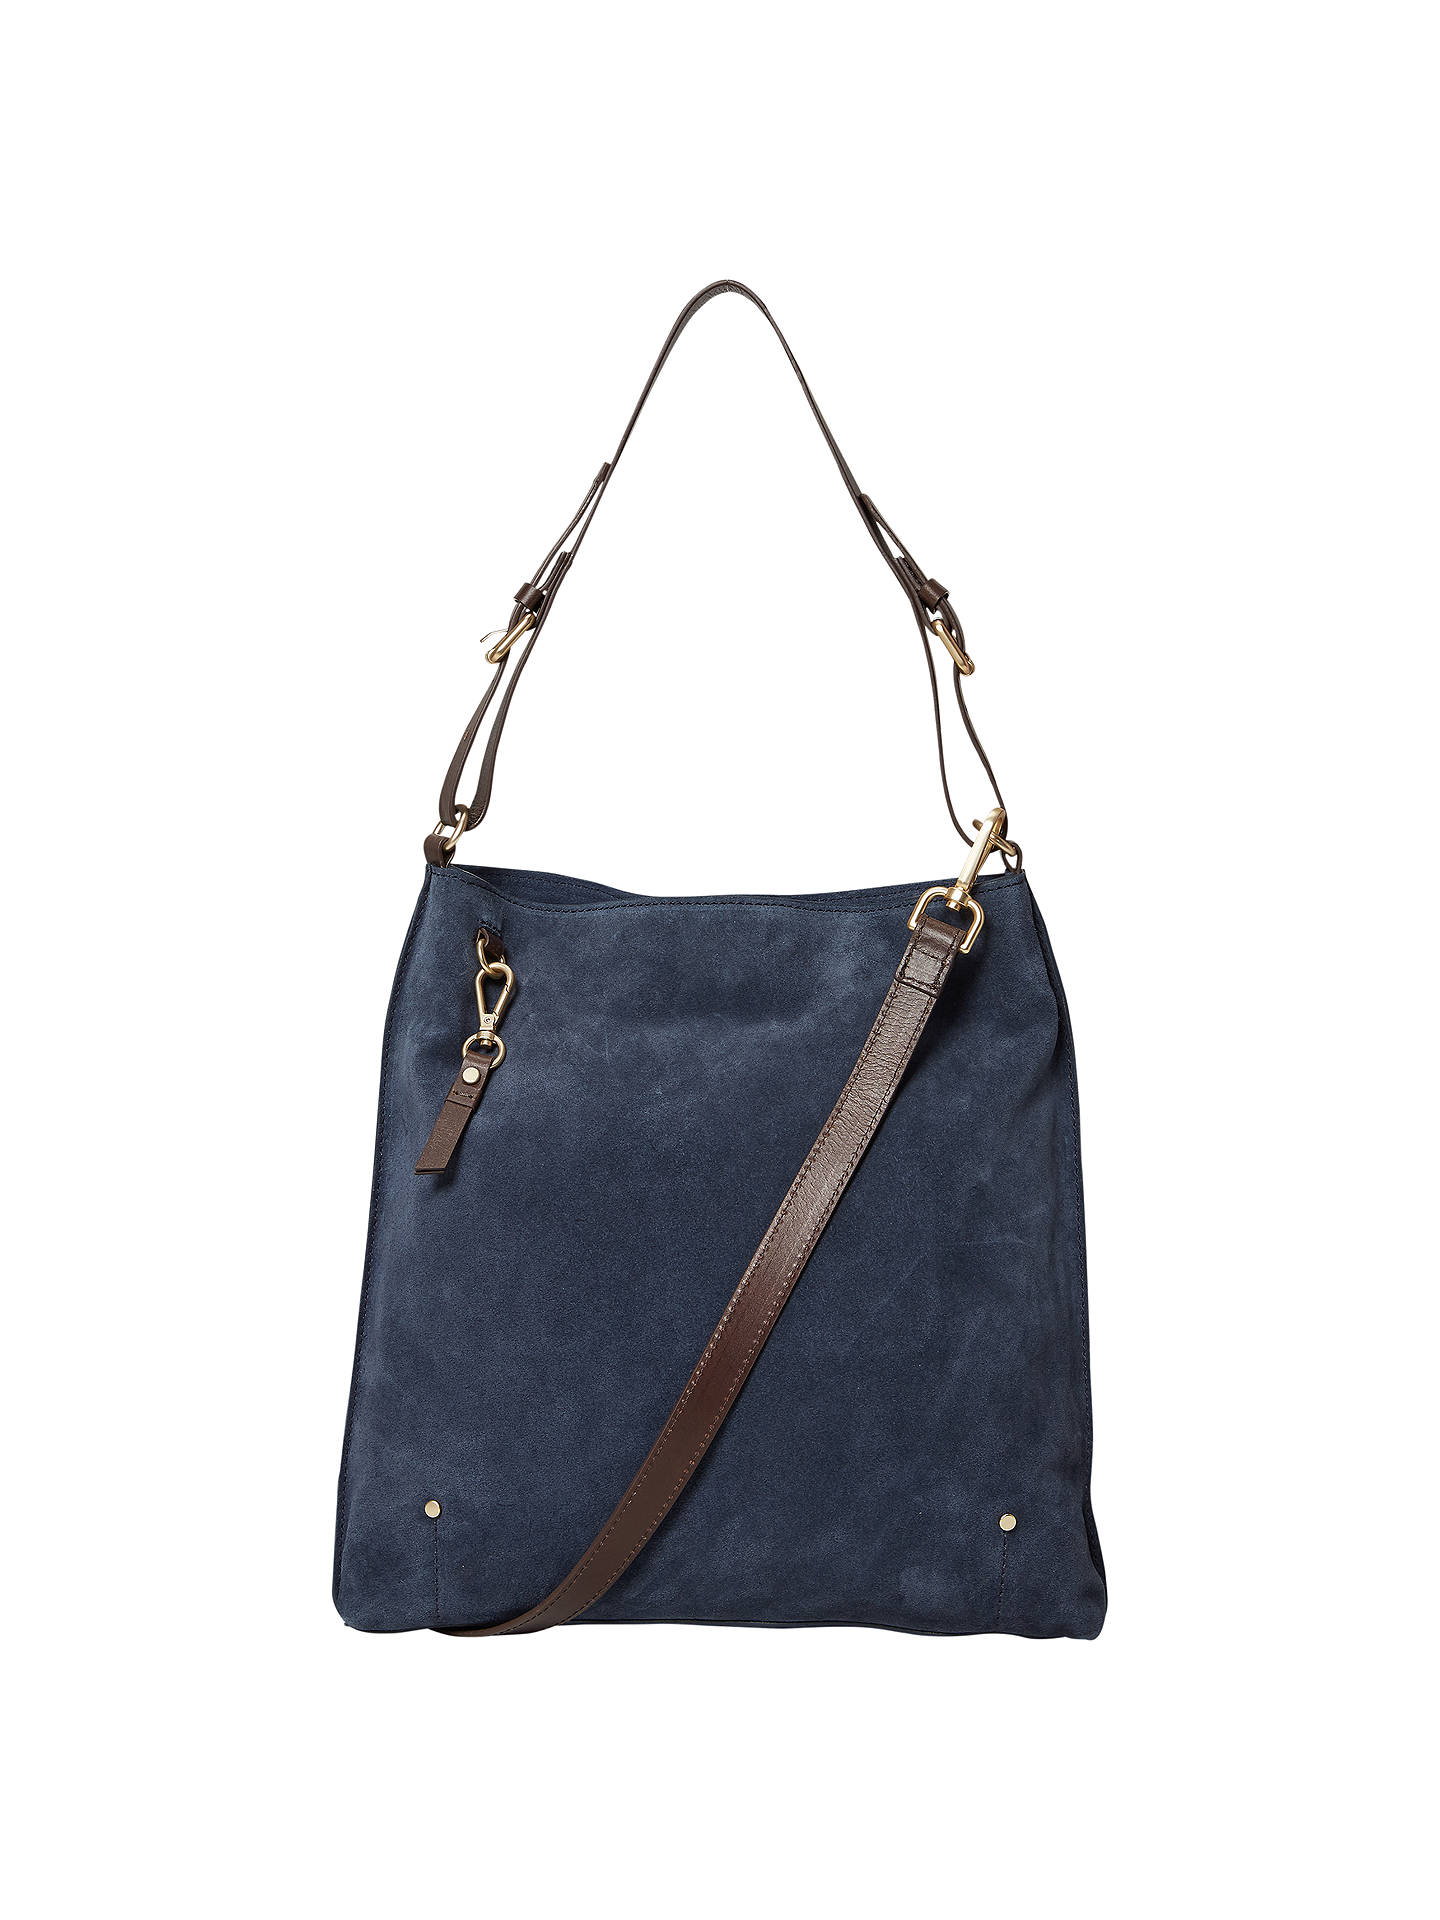 White Stuff Aurelia Suede Hobo Bag Navy Online At Johnlewis